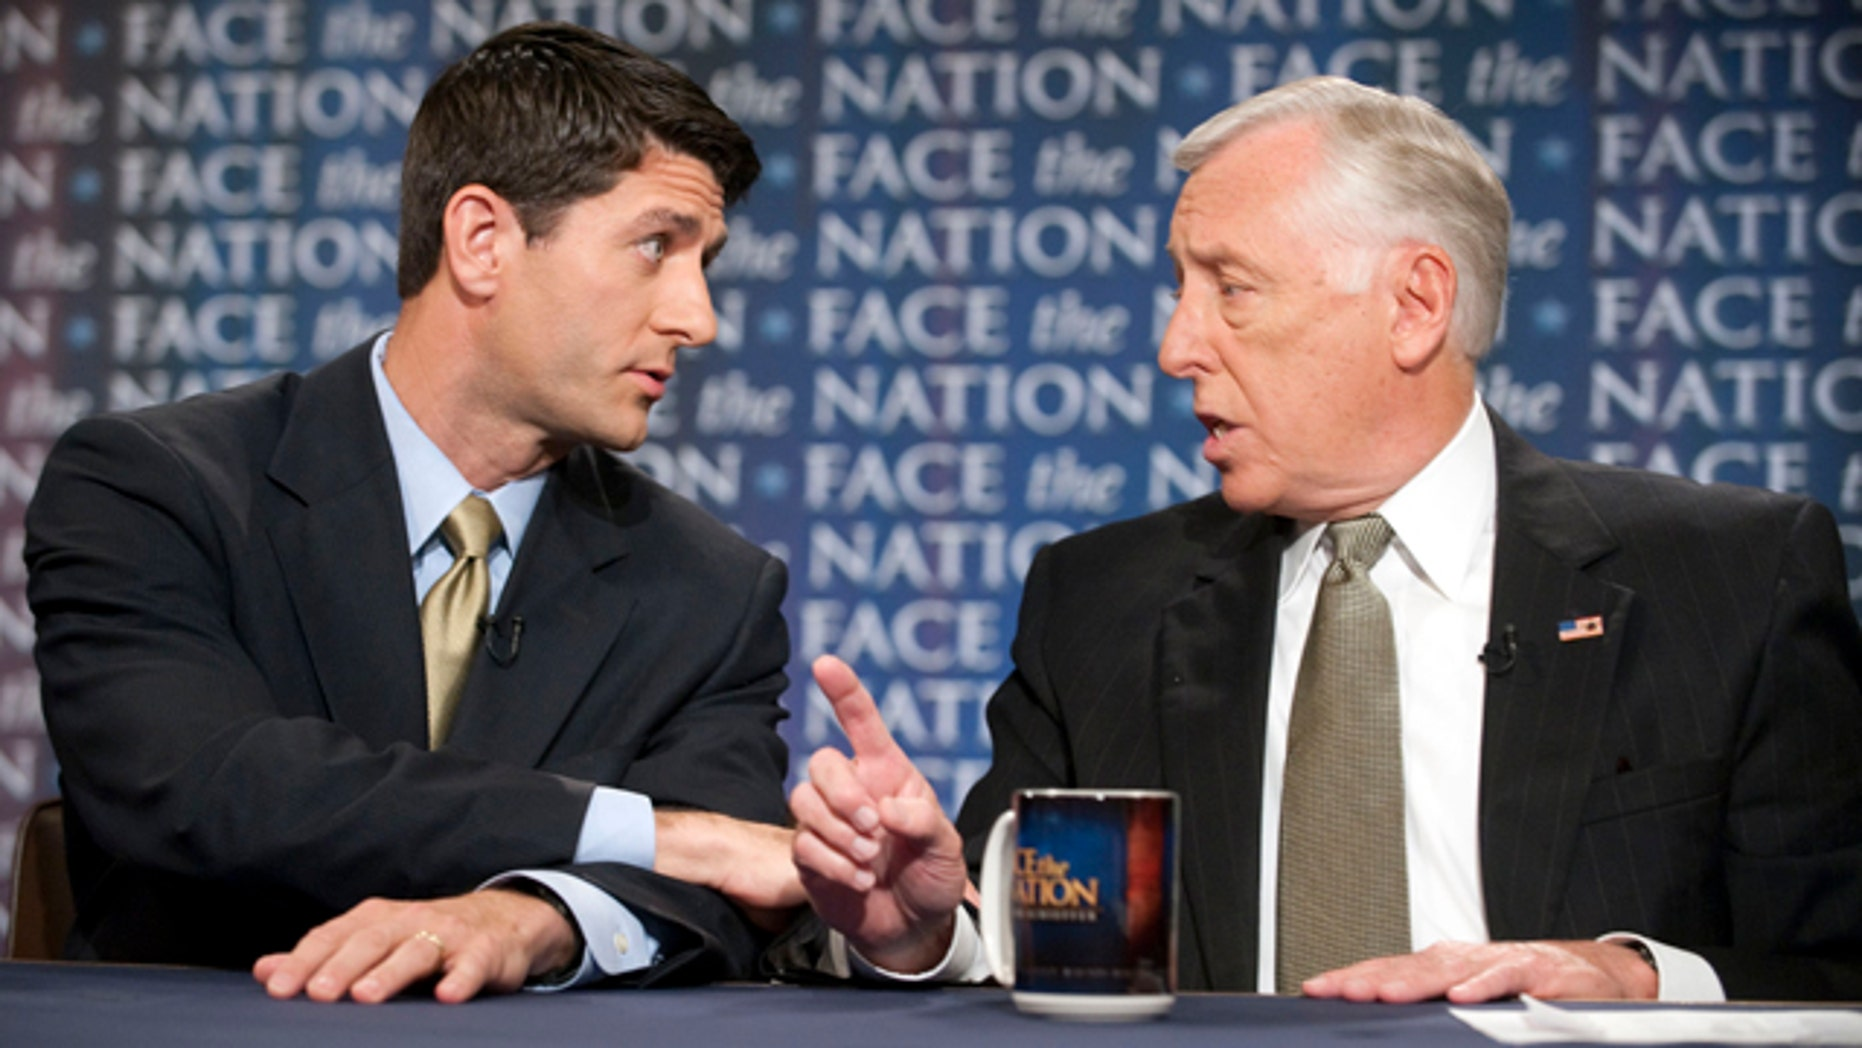 Sunday: House Budget Committee Chairman Paul Ryan, R-Wis., and House Democratic Whip Steny Hoyer, D-Md., discuss jobs and the economy.